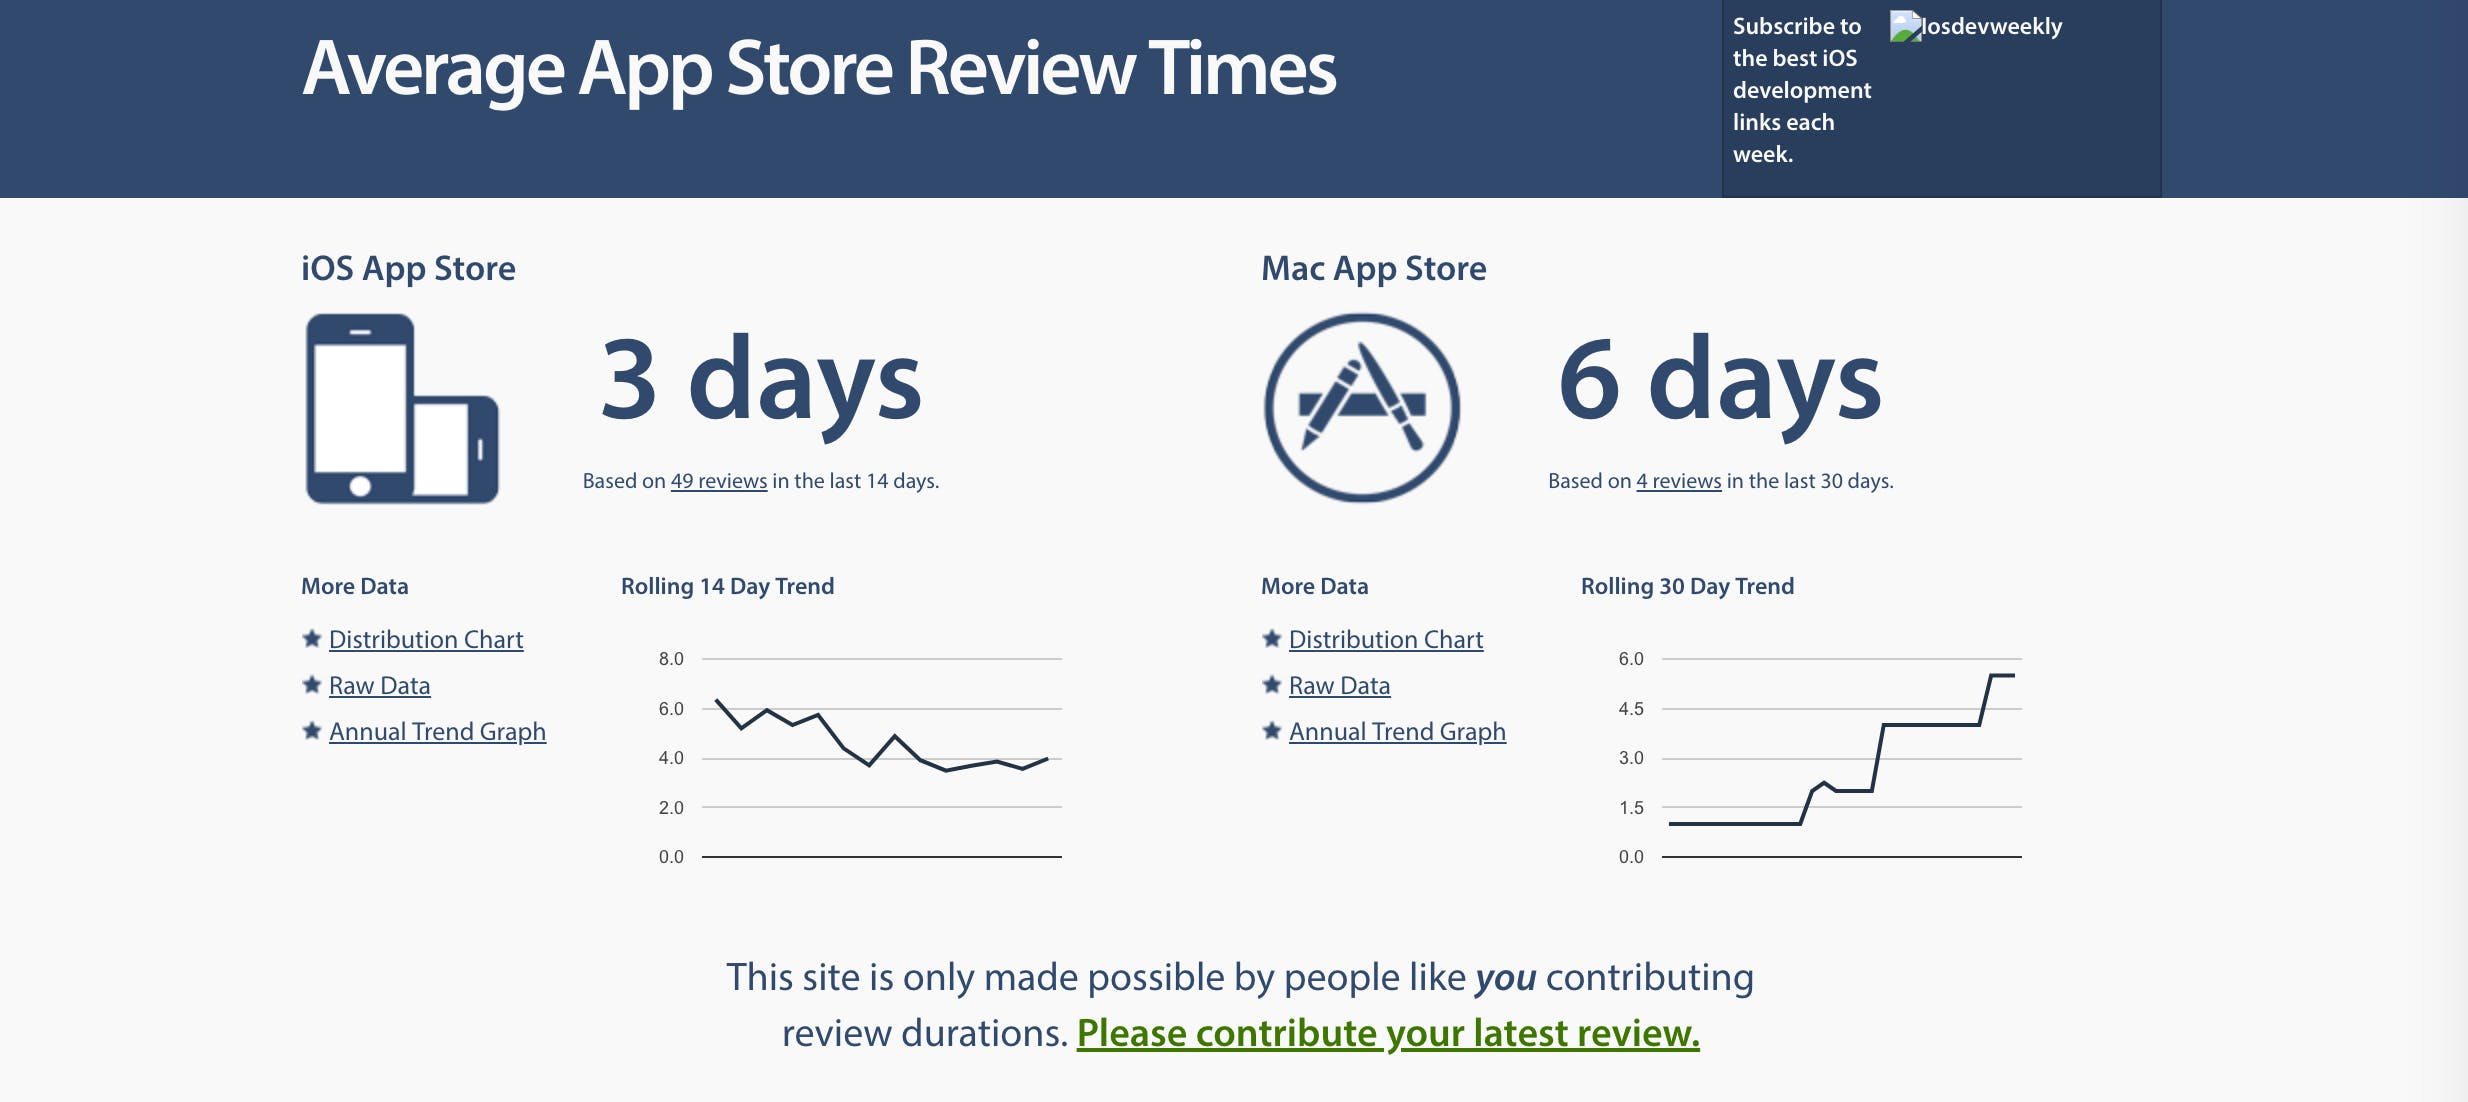 Average App Store Review Times